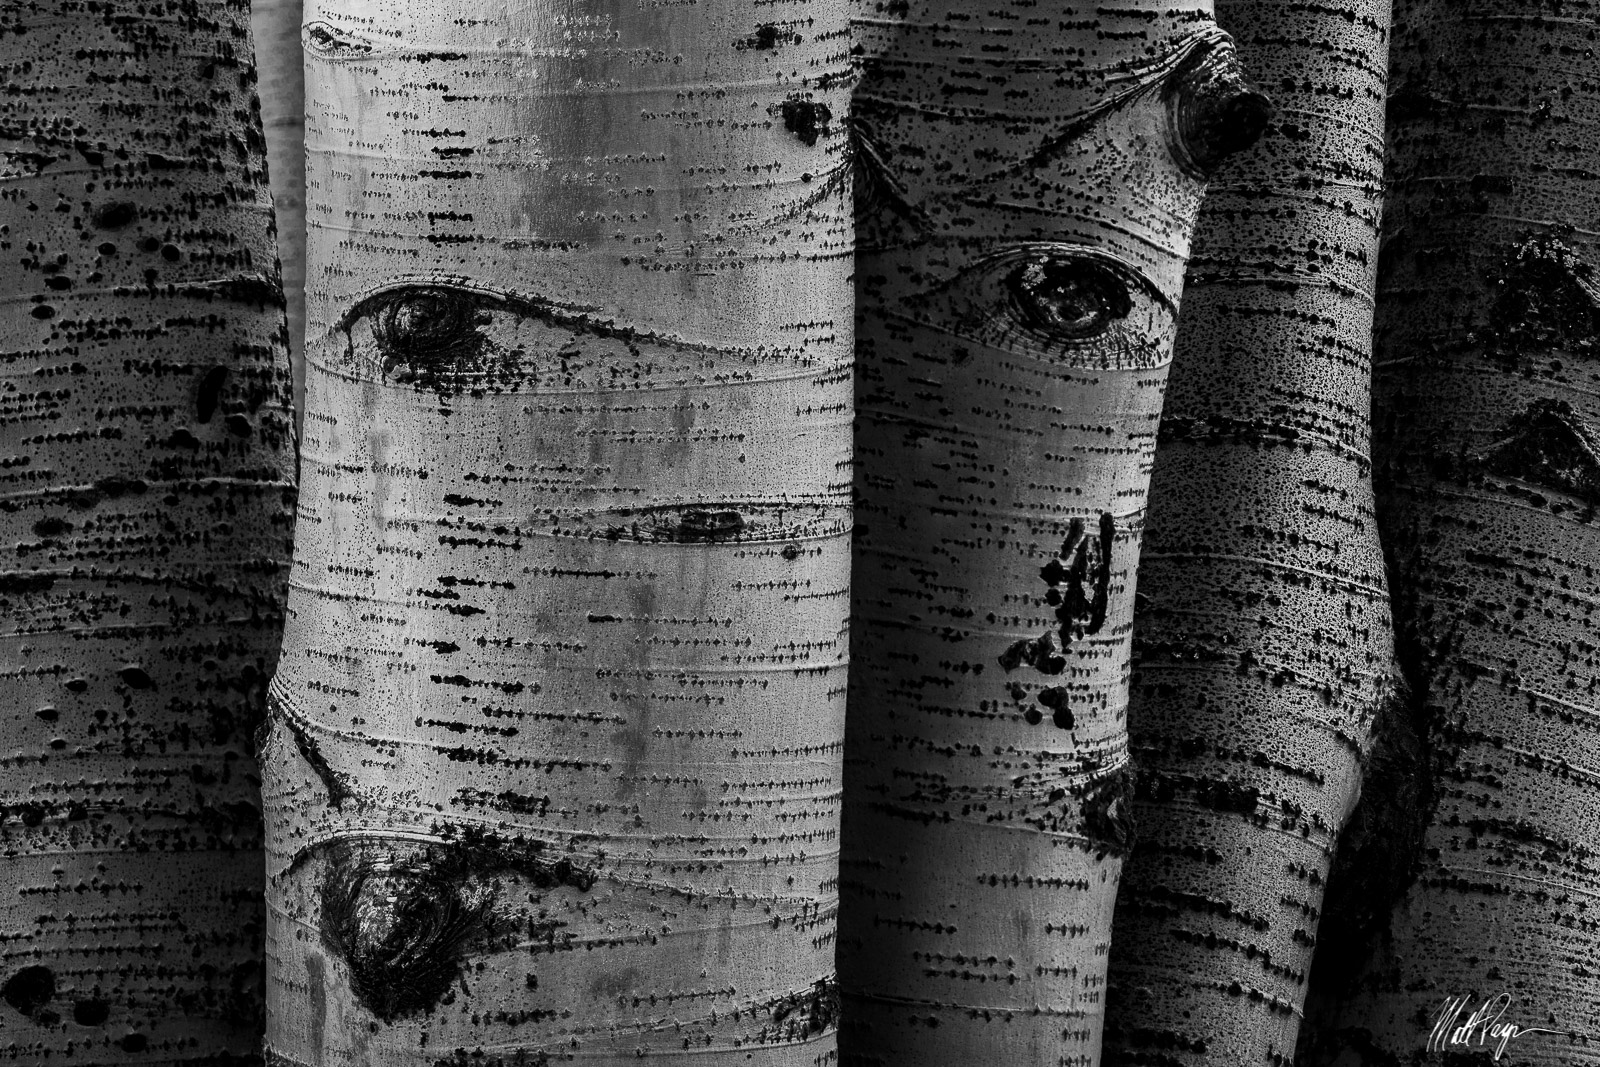 abstract, Aspen Trees, Autumn, Black and White, Colorado, Eyes, Fall, Forest, Intimate Landscape, Landscape, photo